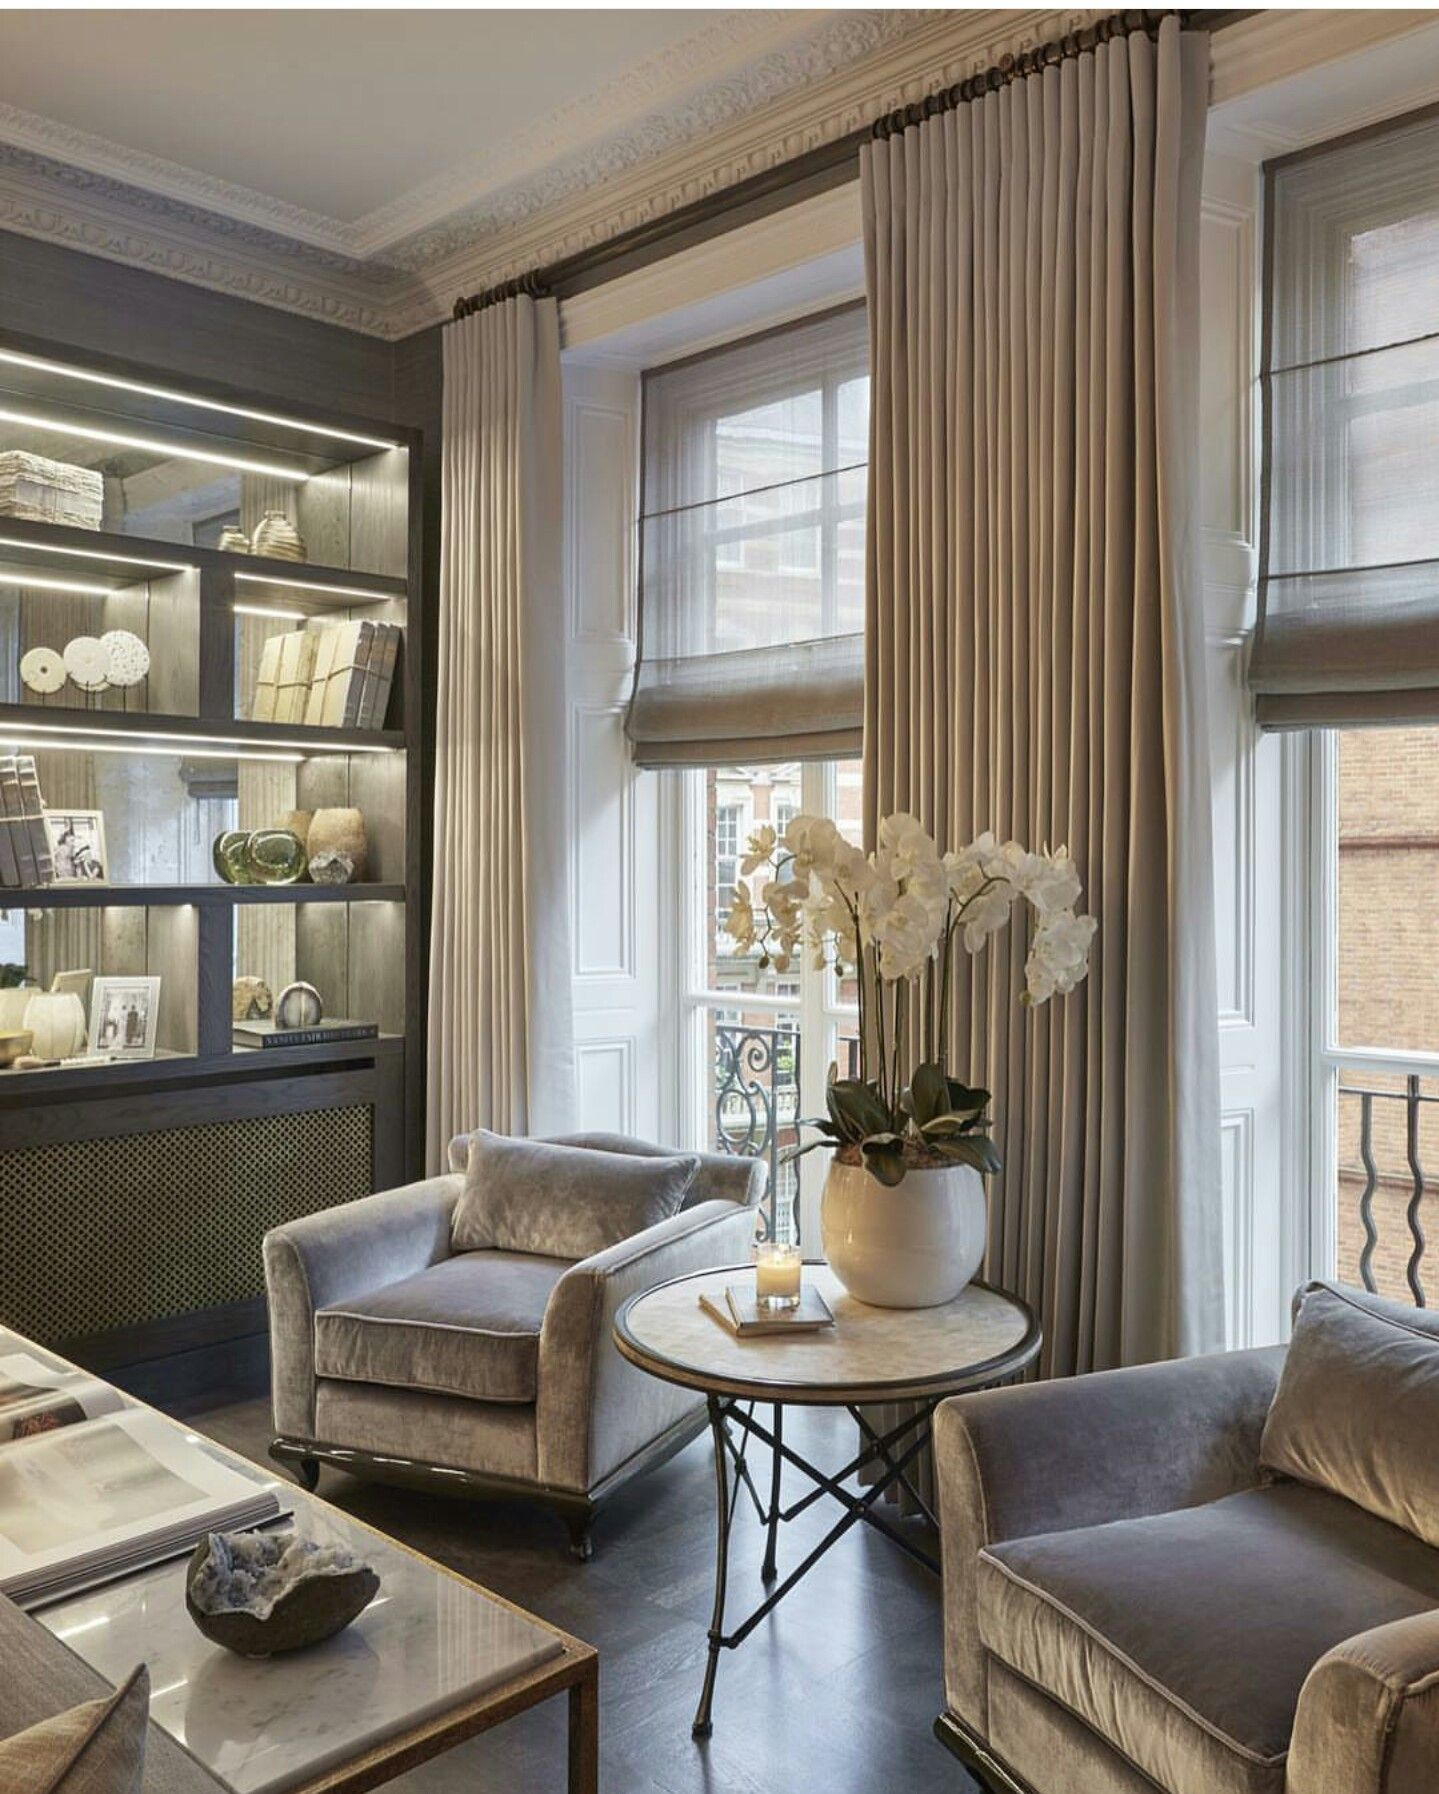 Cozy Neutral Tone Sitting Area By Sophie Paterson